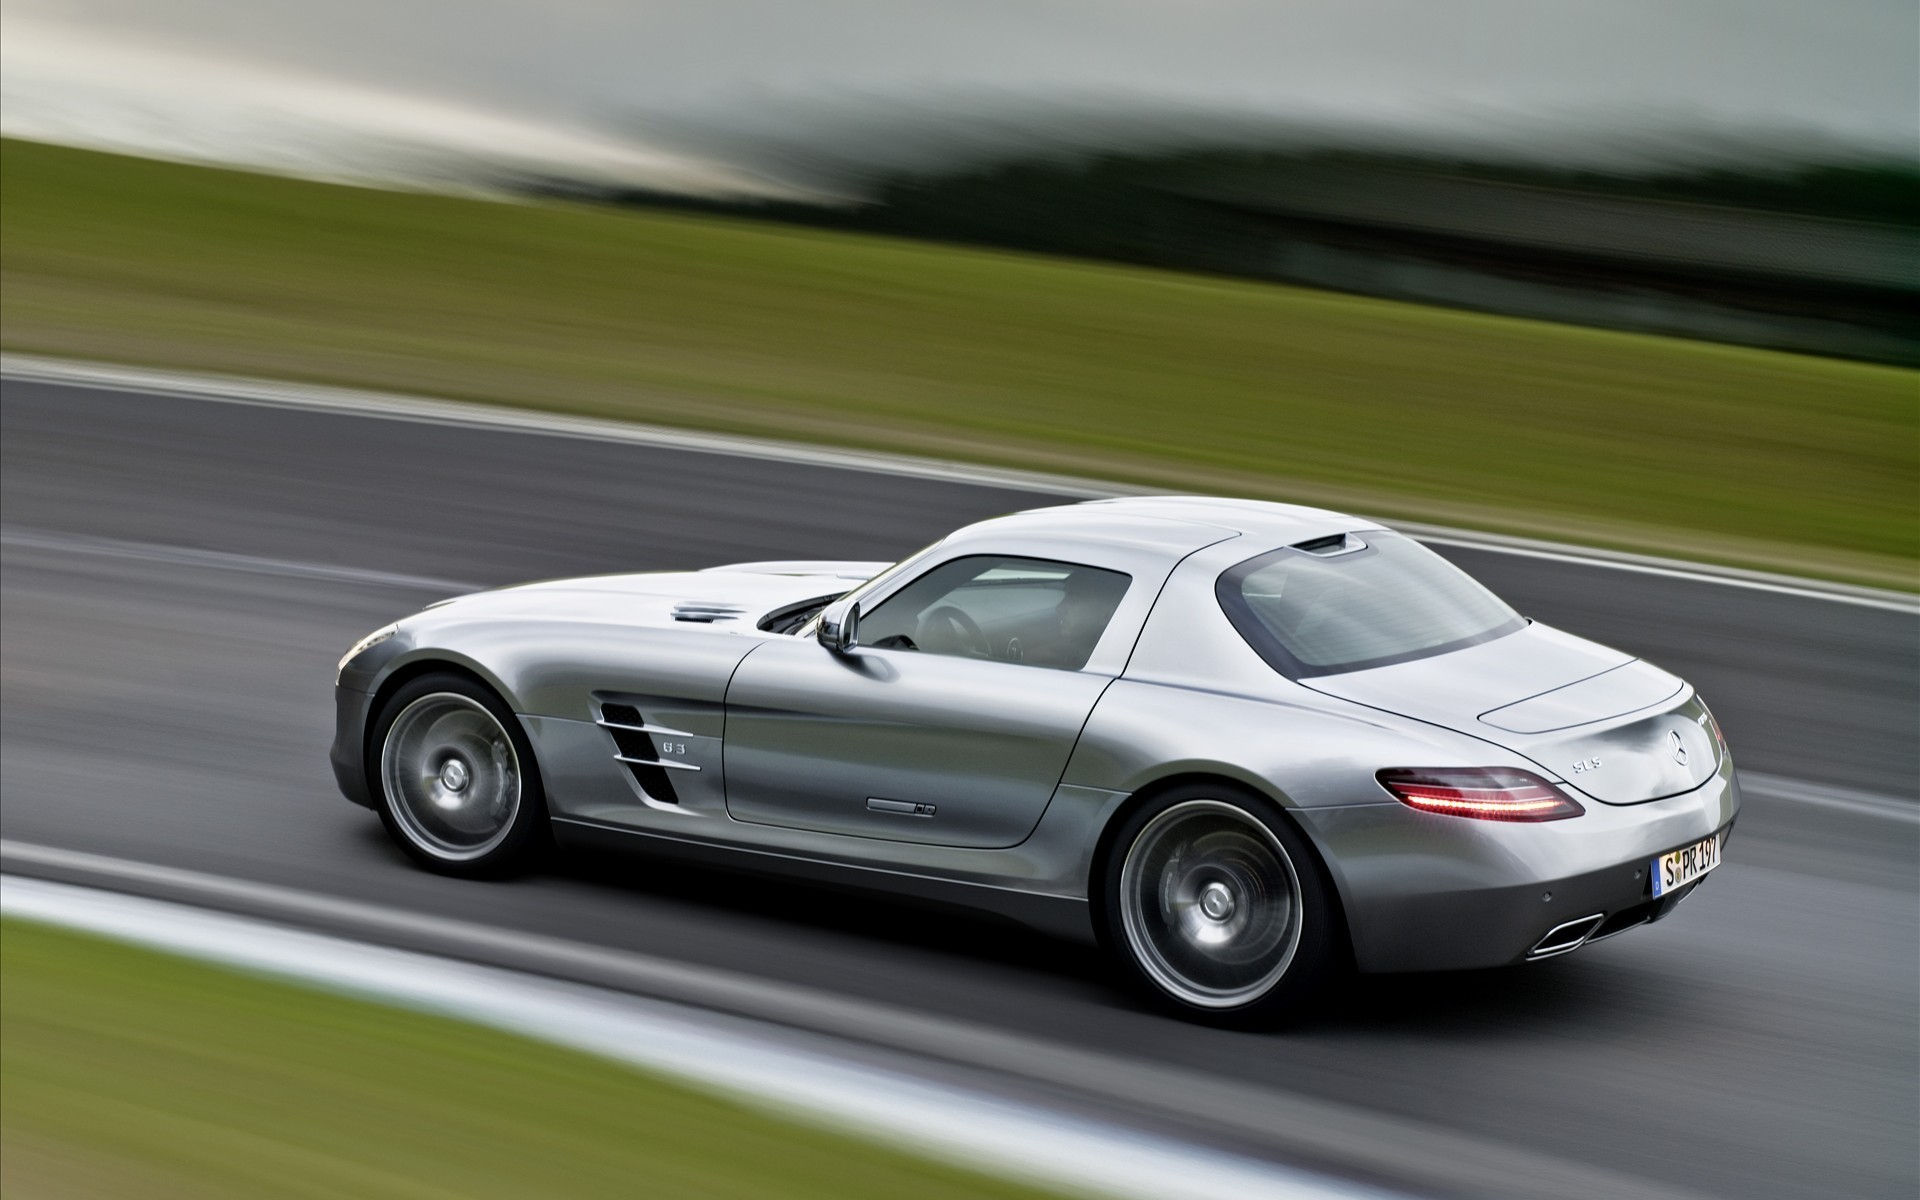 cars vehicles mercedes-benz sls